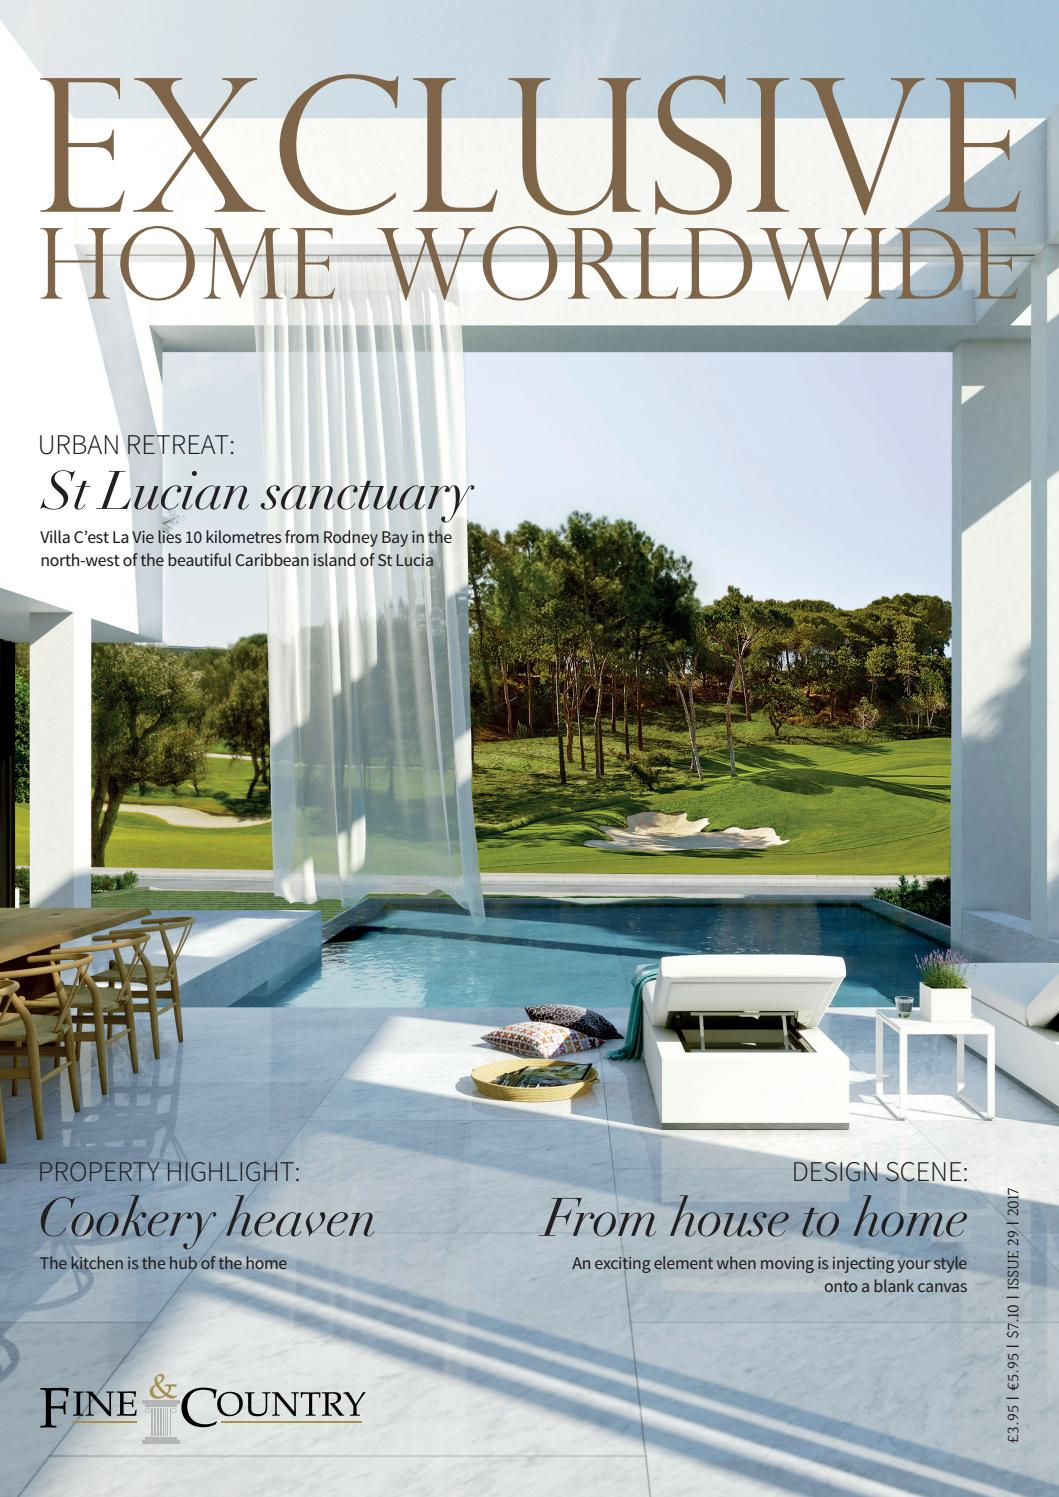 Exclusive Home Worldwide Issue 29 2017 by Fine & Country - issuu